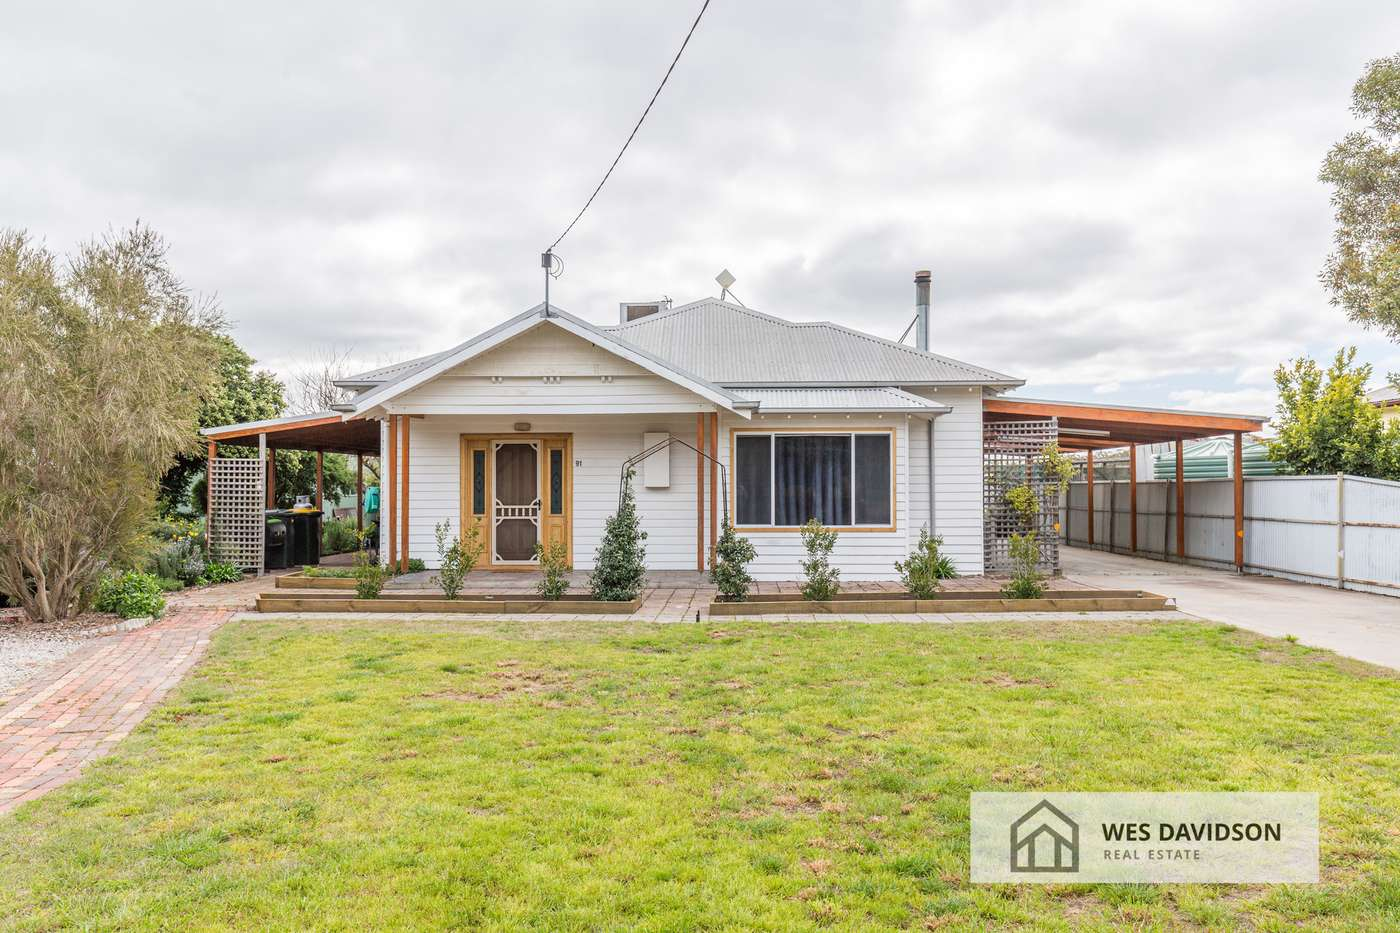 Main view of Homely house listing, 91 Quantong-Polkemmet Road, Quantong, VIC 3401